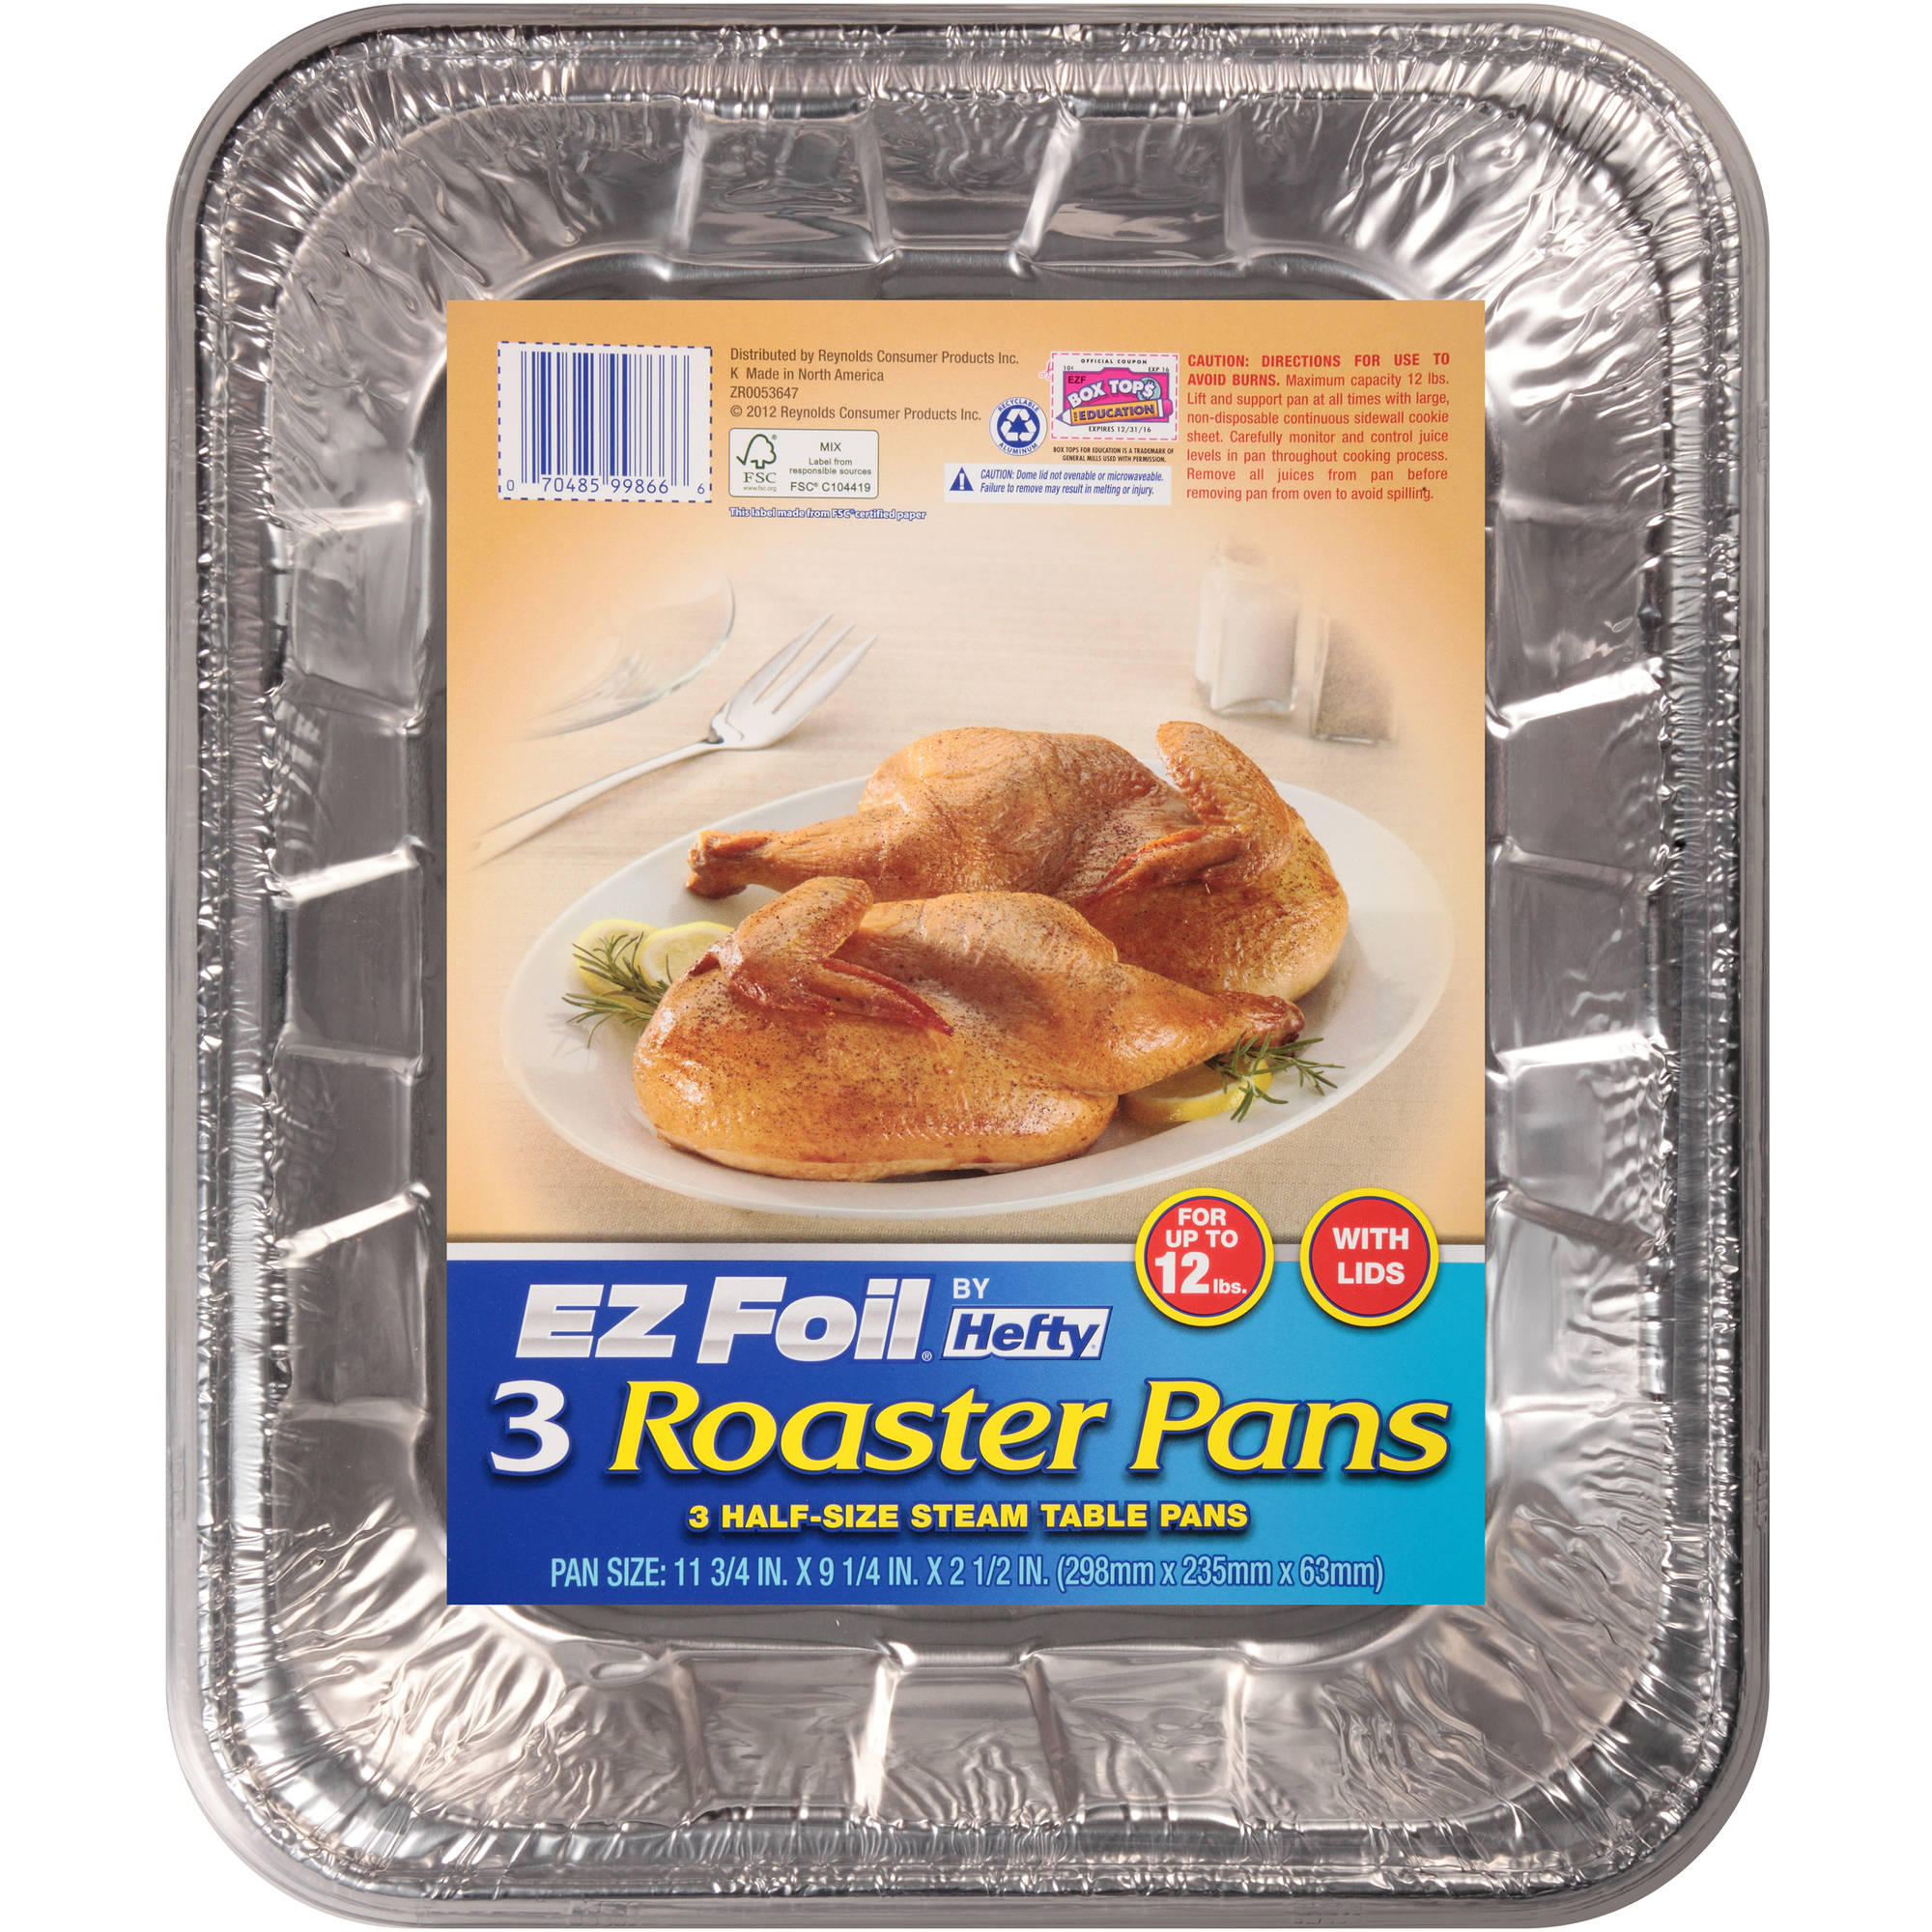 Hefty EZ Foil Roaster Pans With Covers, 3ct